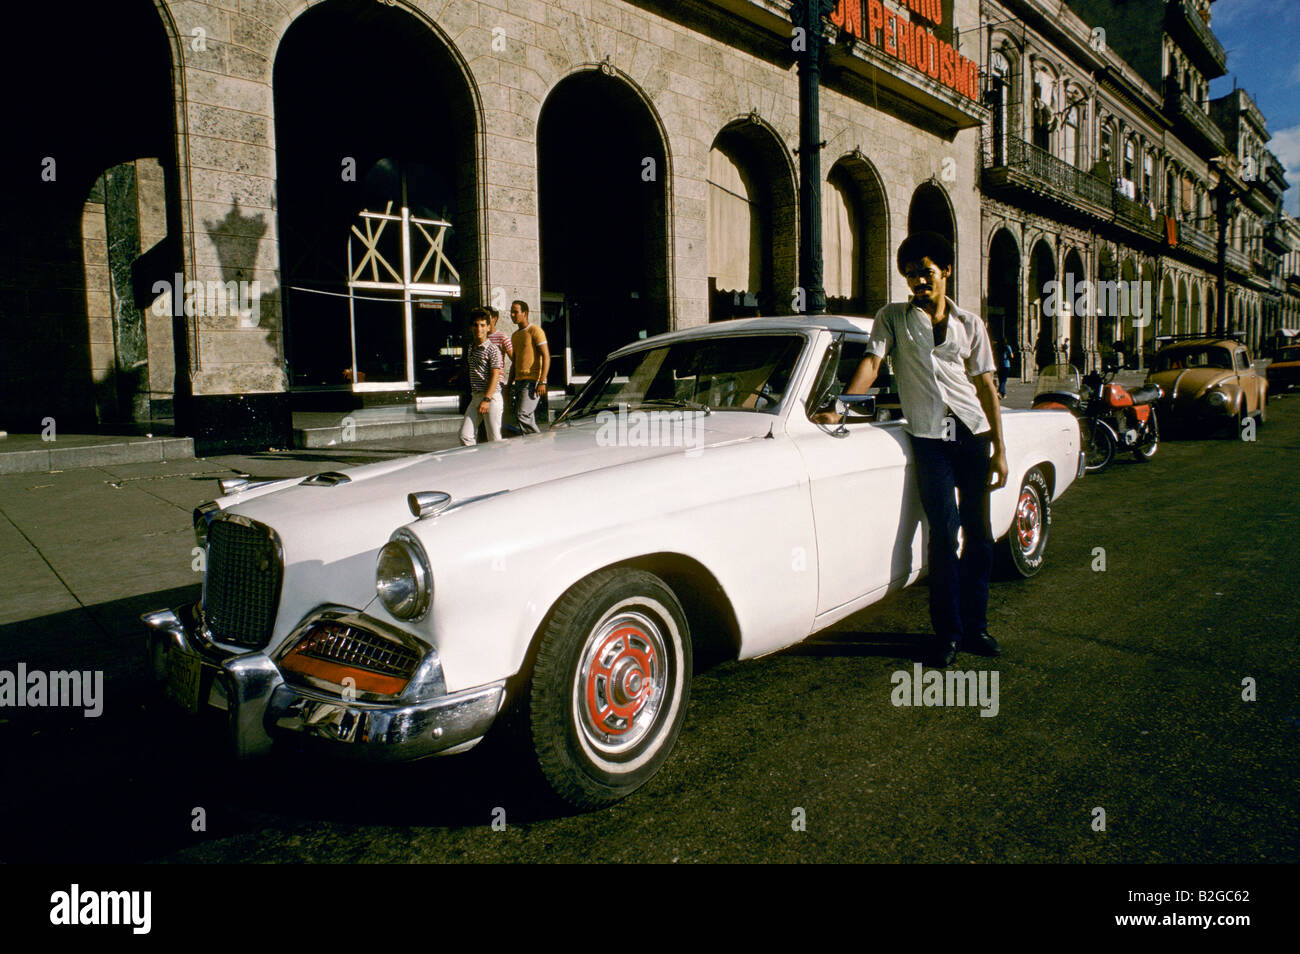 Man standing next to his white classic American car, parked in a street in Havana, Cuba - Stock Image